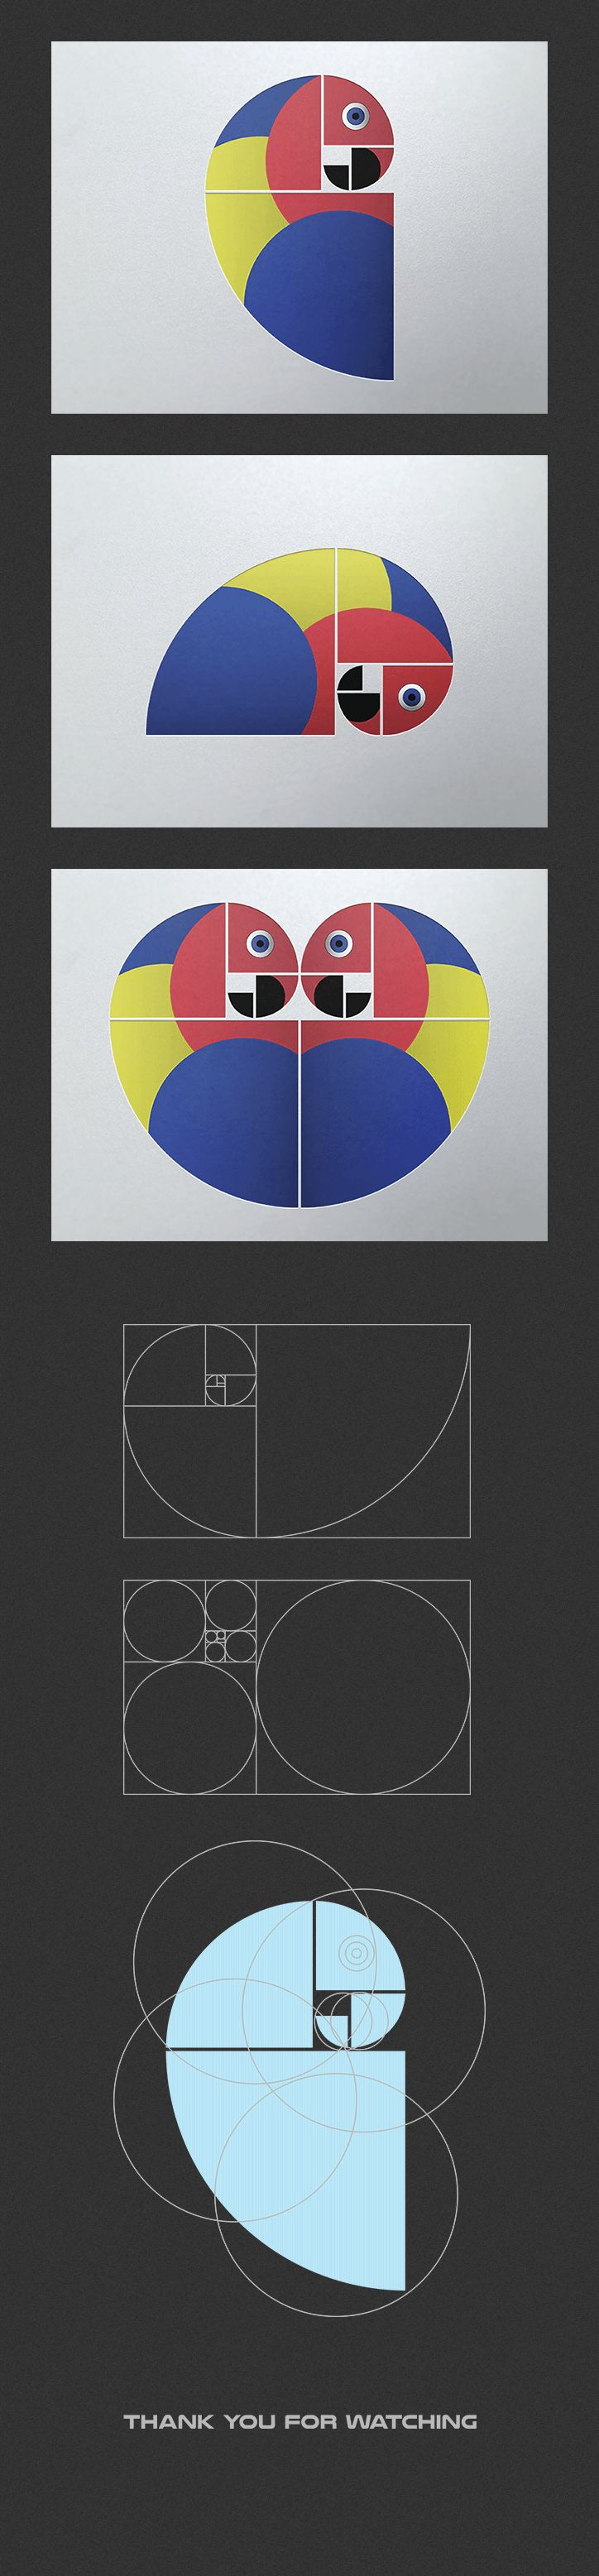 Poster design golden ratio - Parrot Poster Demonstrating The Golden Ratio Designed By Fish Of Life Via